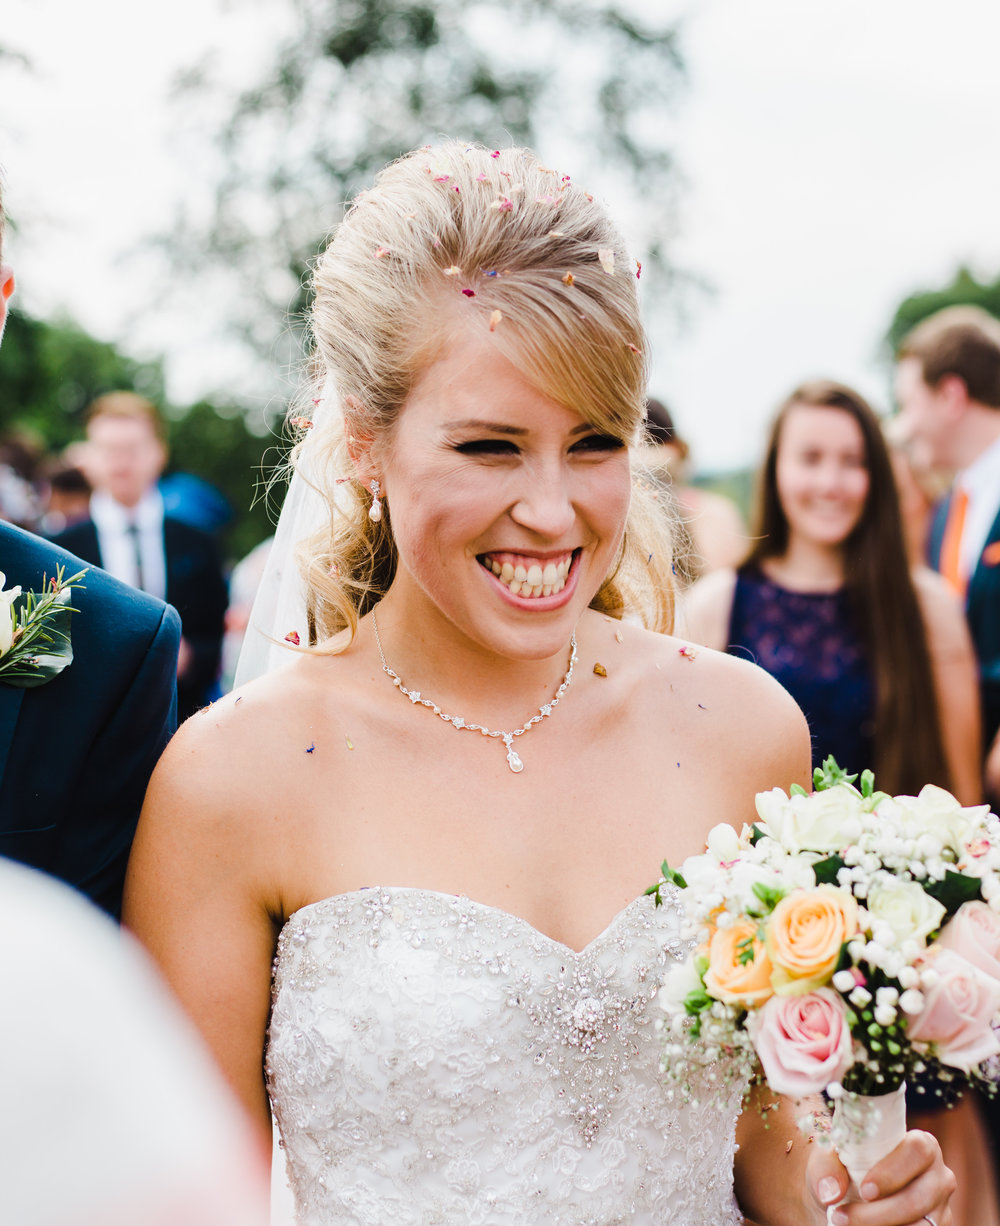 Big smiles from the bride- Barn wedding venue